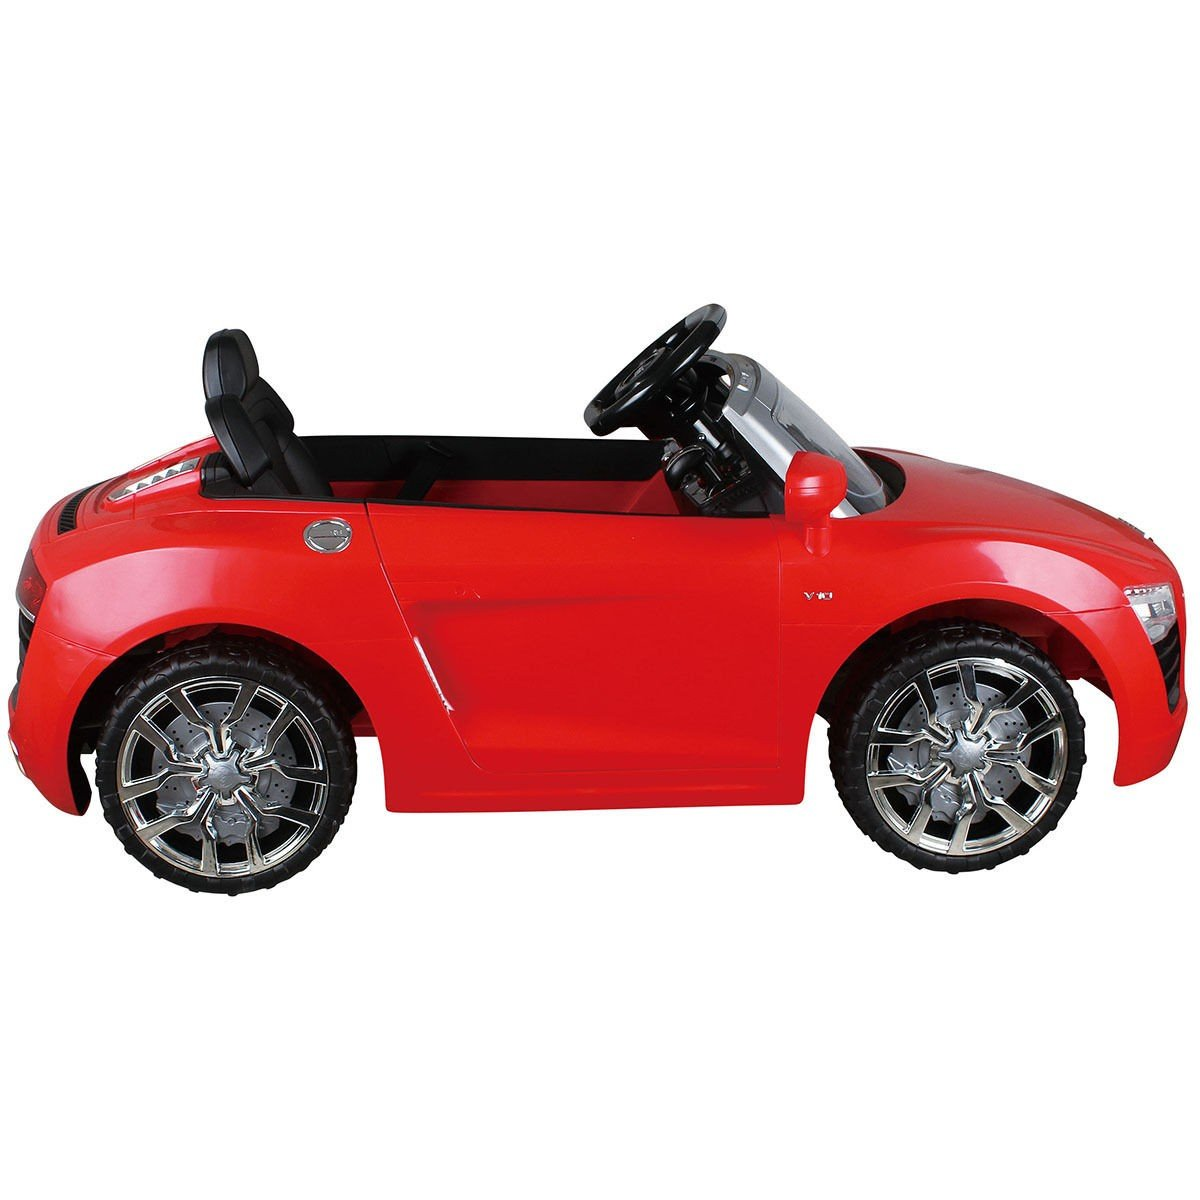 Amazon.com: Audi R8 Spyder 12 V Electric Kids Ride On Car ...